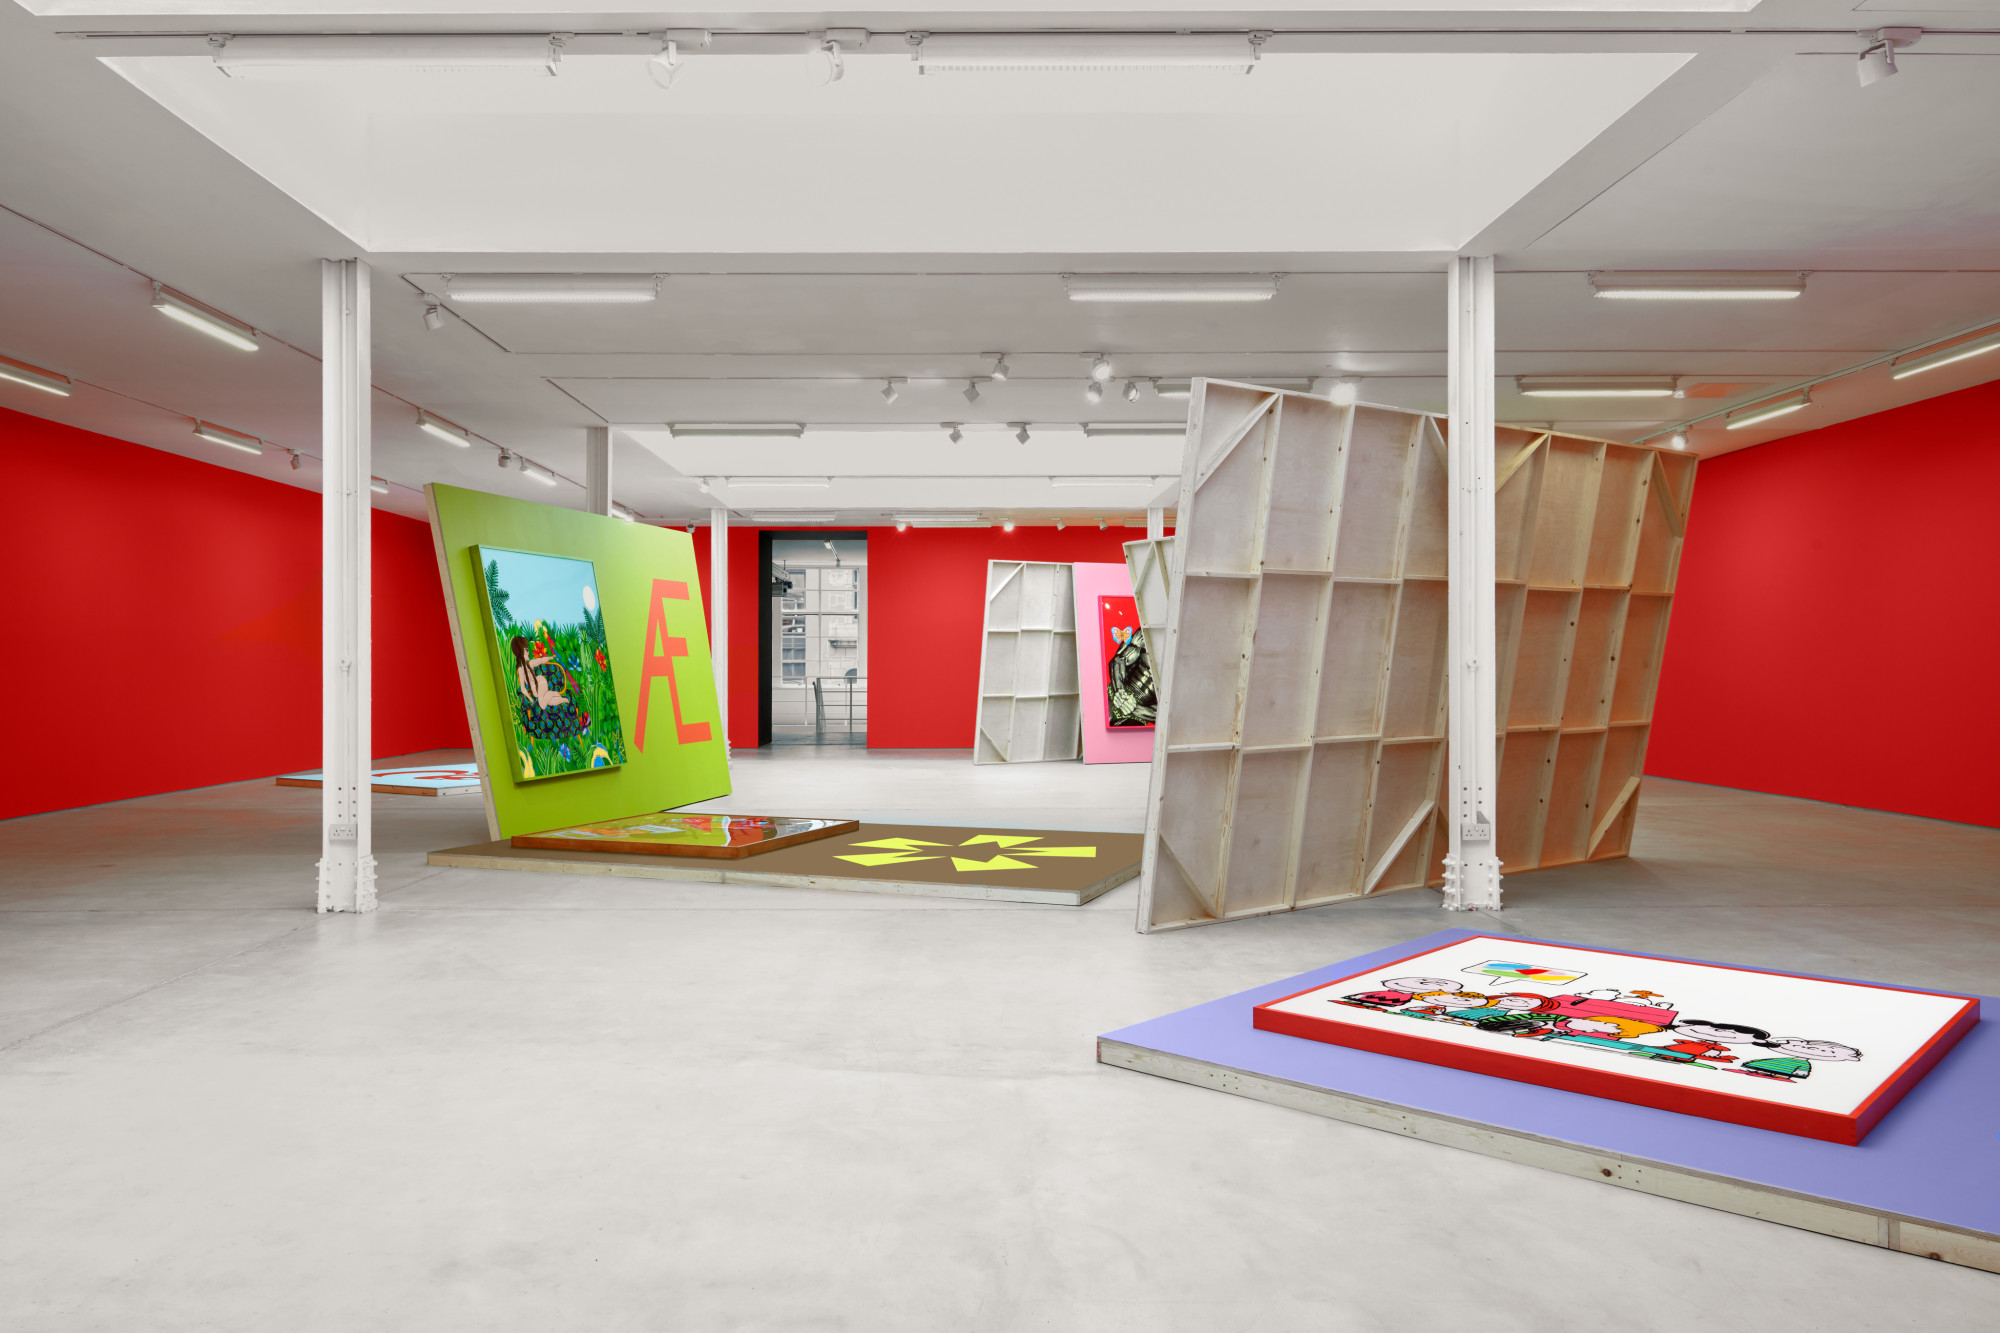 "<div class=""artwork_caption""><p>Installation view, Alex Da Corte, Sadie Coles HQ, 62 Kingly Street W1, 31 October - 13th January 2020</p><p>Photography by Robert Glowacki</p></div>"